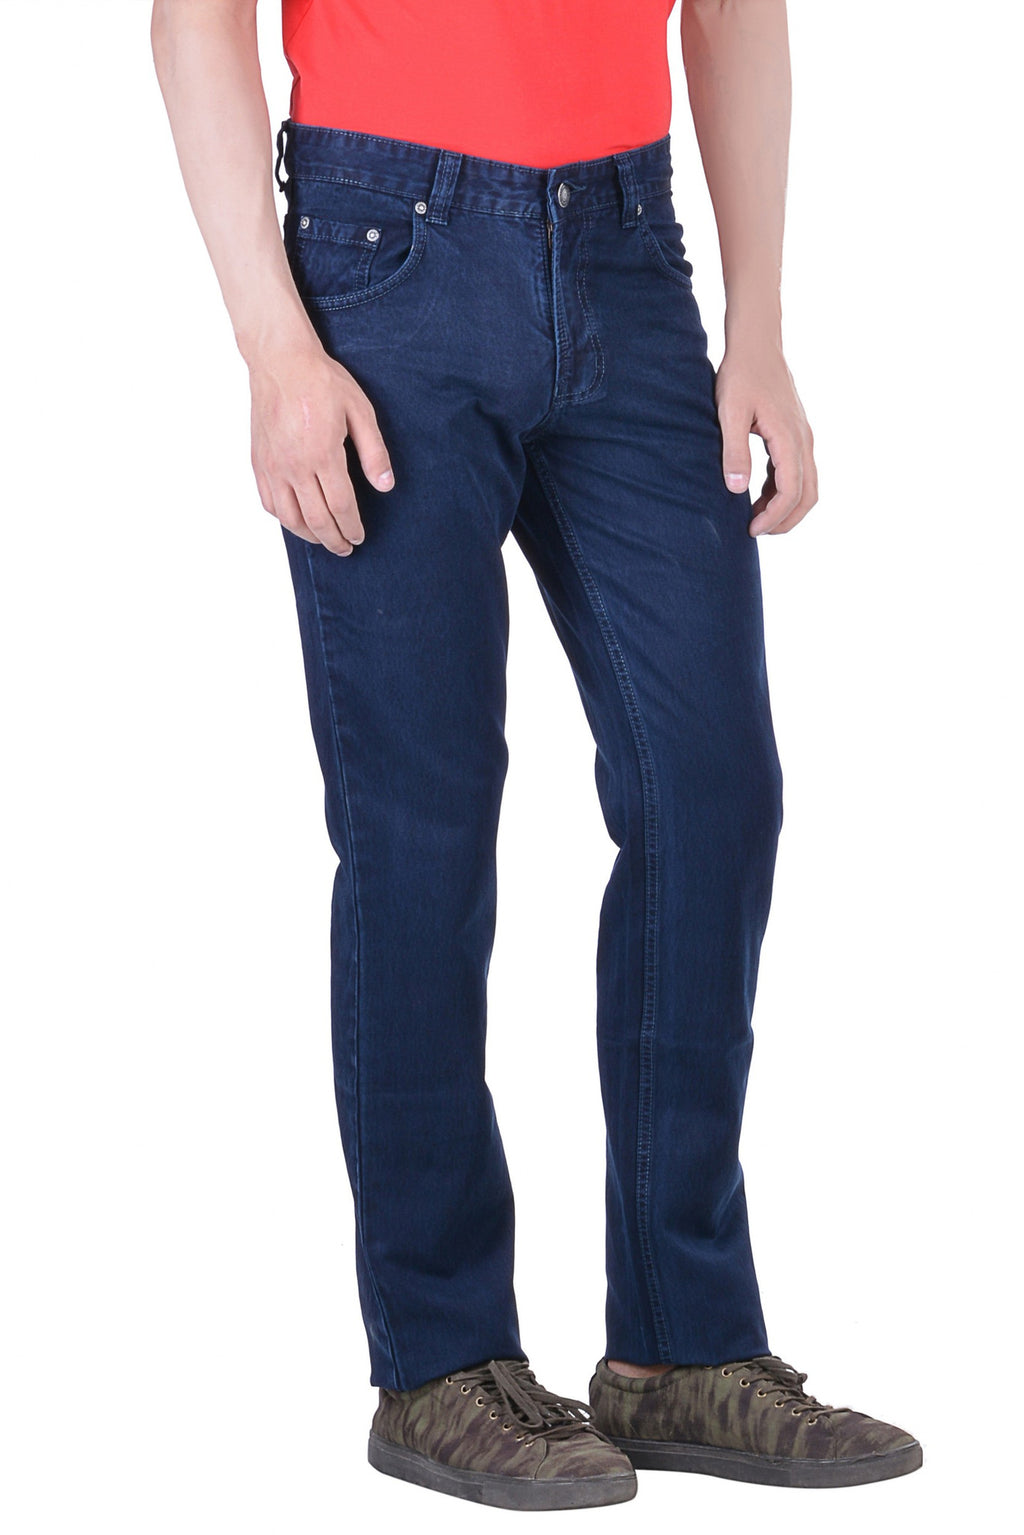 Saphire Blue Cowboy Silky Denim SD2116